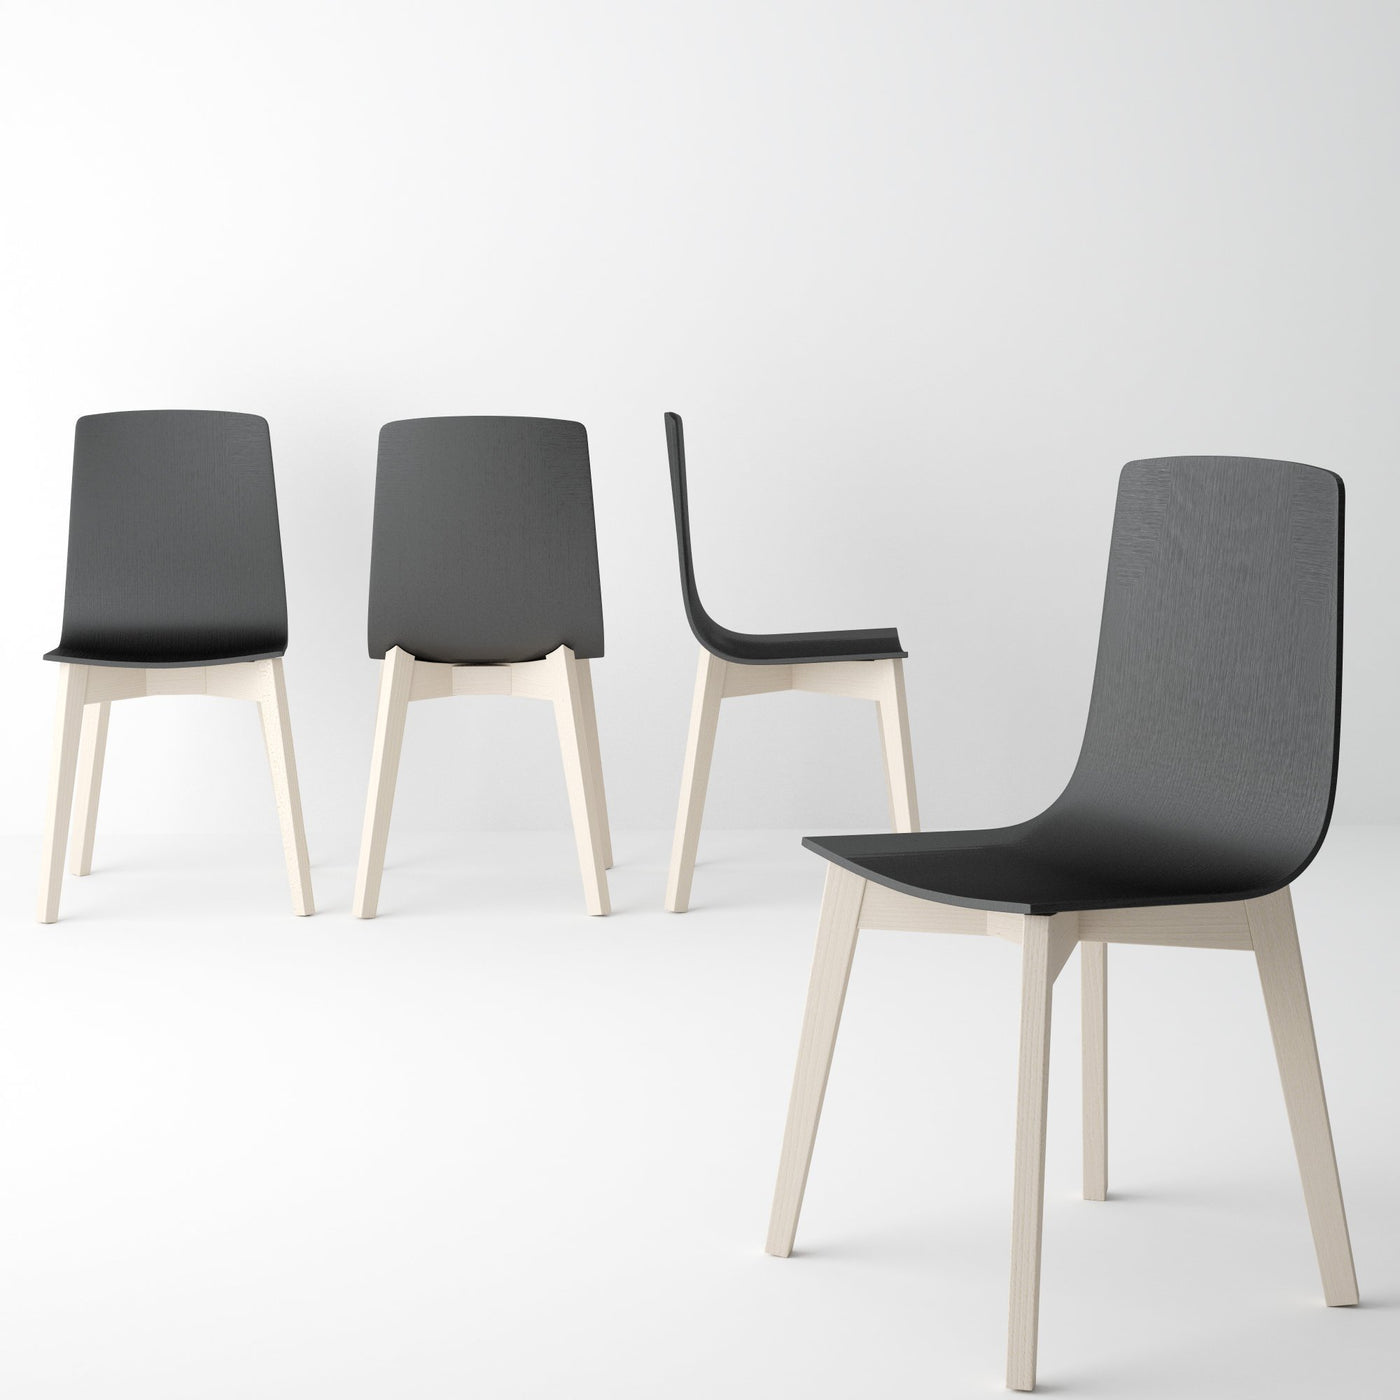 Enjoyable Eclipse Dining Chair Solid Beechwood Black Lacquered Seat Back And Bleached Legs Pabps2019 Chair Design Images Pabps2019Com